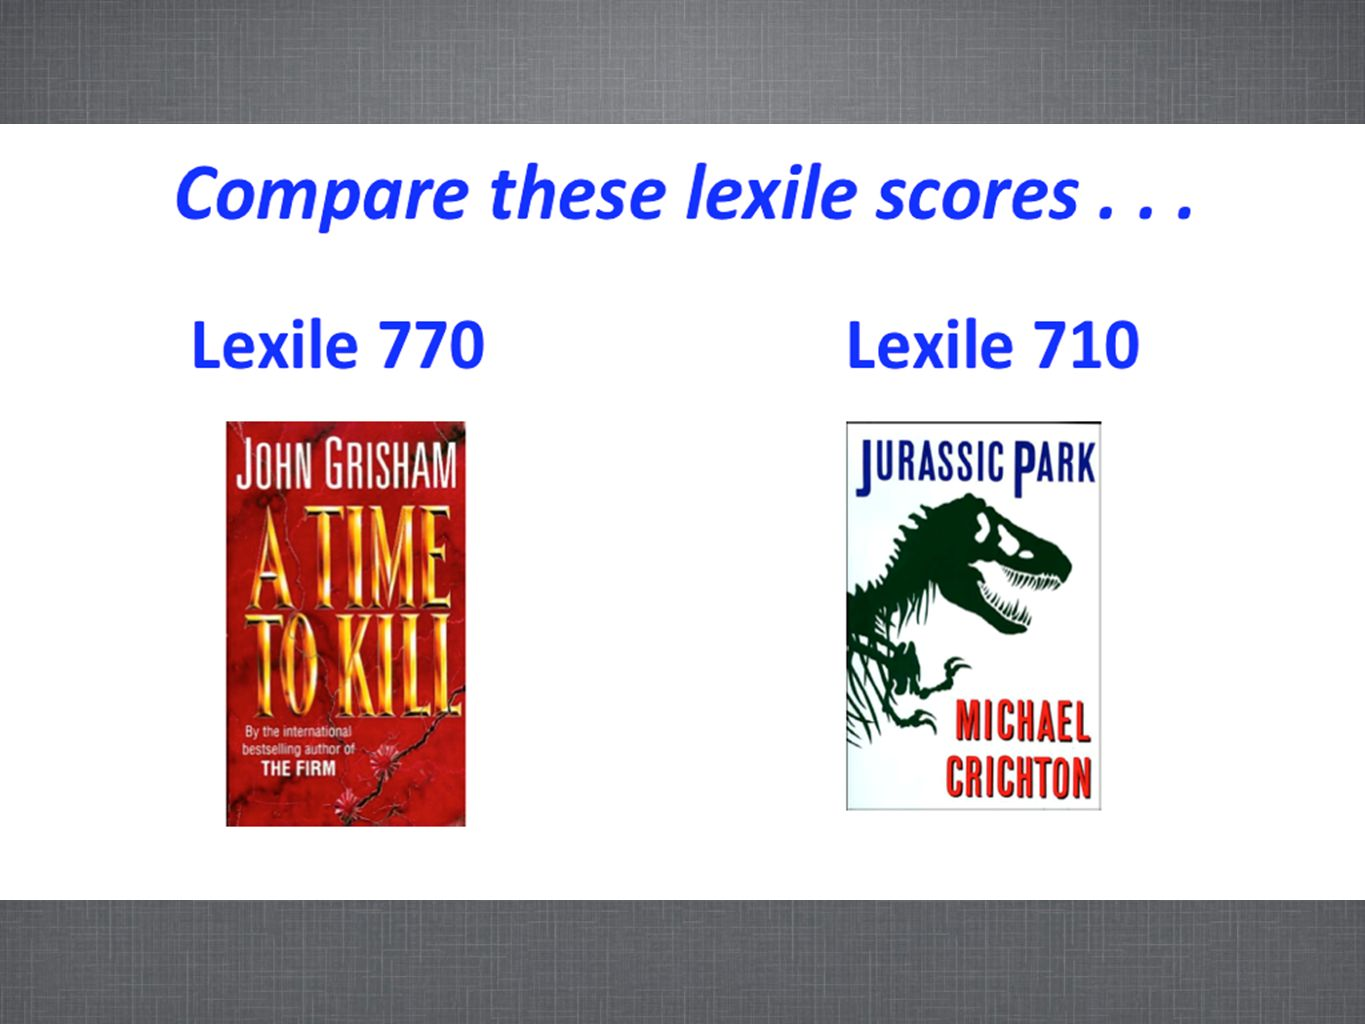 Compare this slide to the next slide.